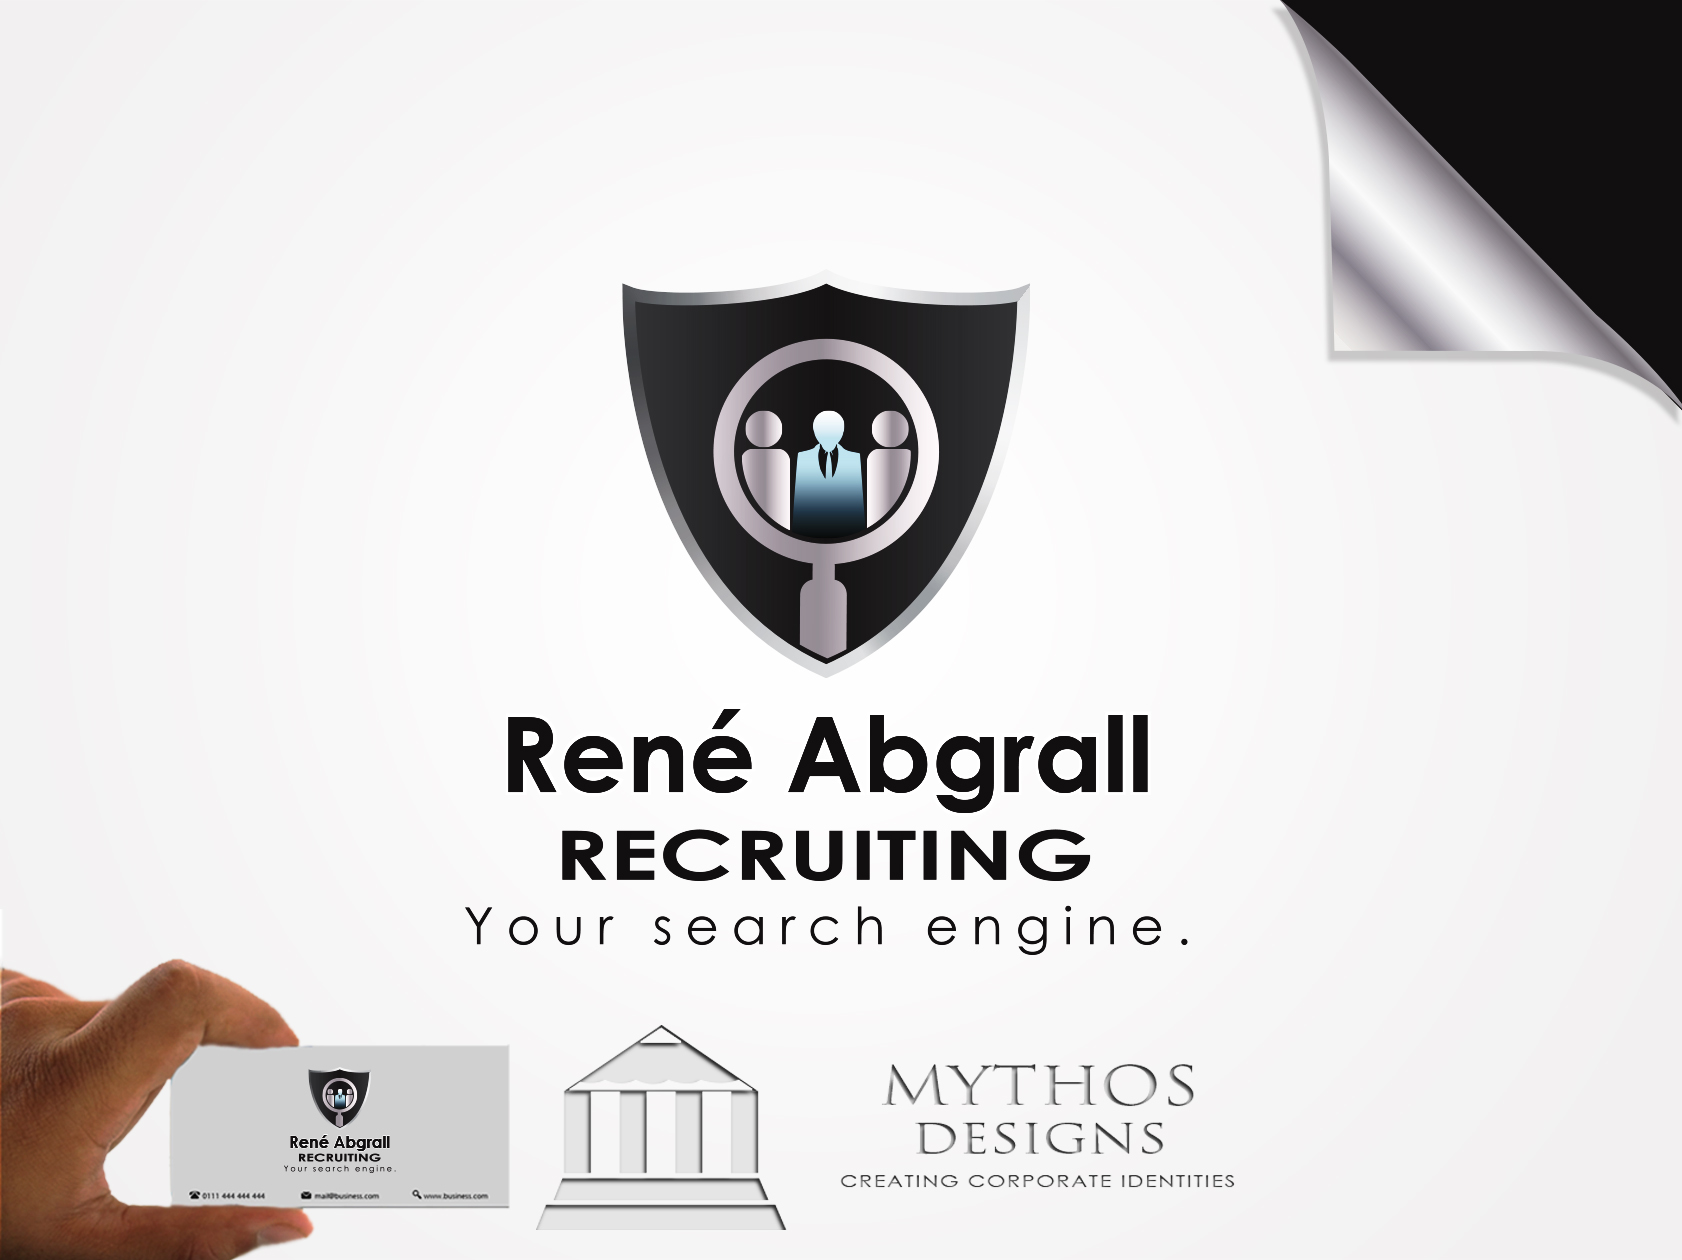 Logo Design by Mythos Designs - Entry No. 34 in the Logo Design Contest Artistic Logo Design for René Abgrall Recruiting.